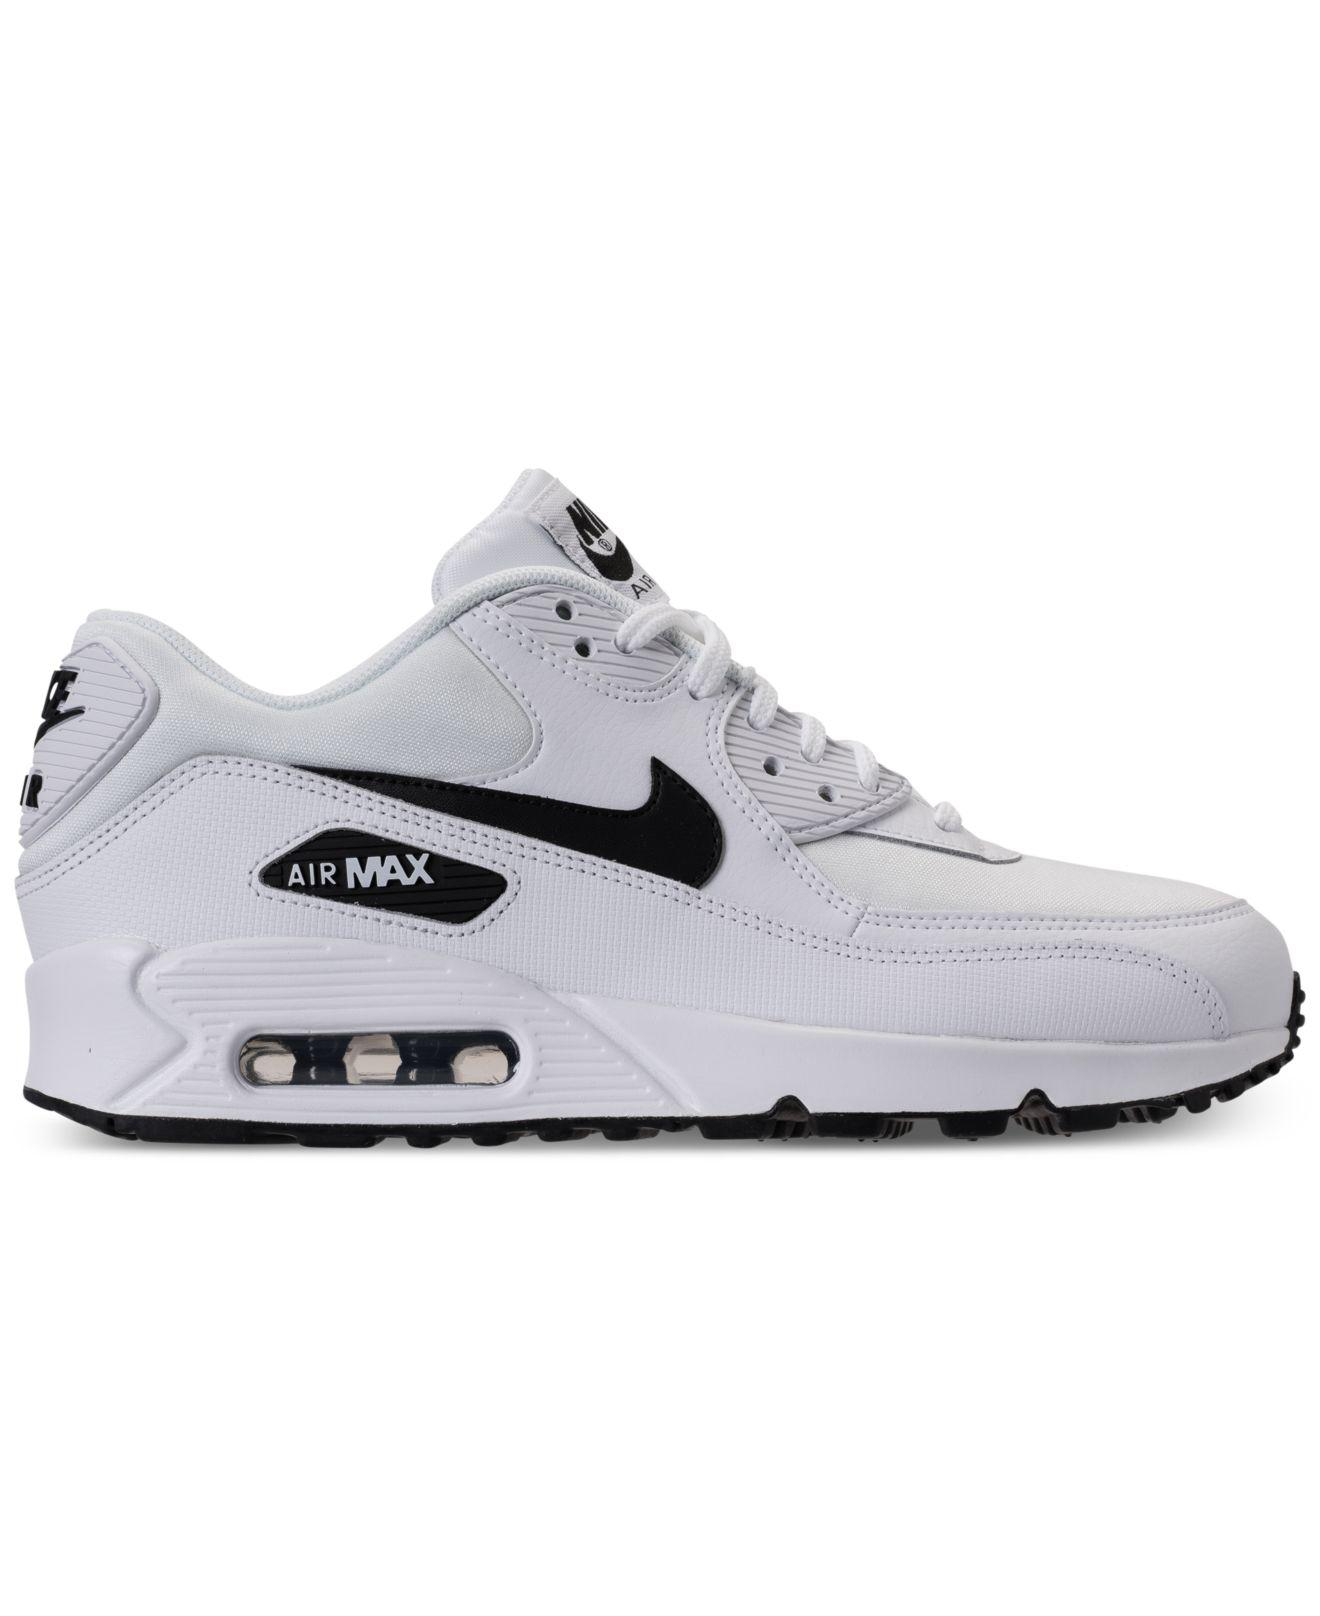 3ba515a2b77 ... new zealand lyst nike air max 90 running sneakers from finish line in  white 7dd4d e60f1